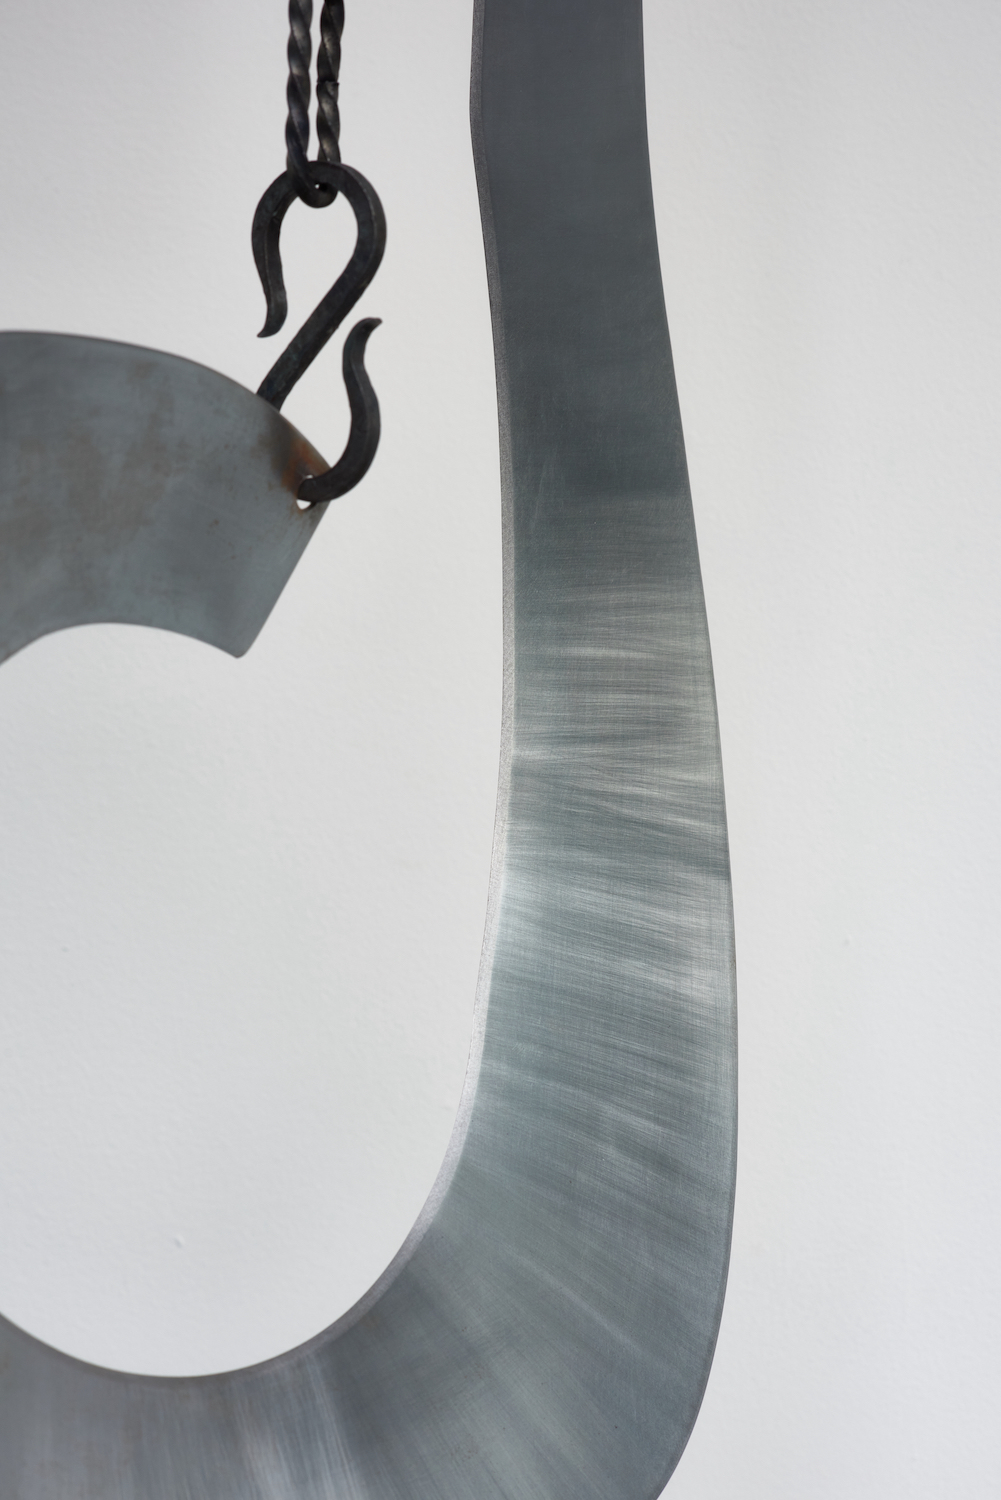 Tarek Lakhrissi, BETRAYING FAMILY (detail), 2021. Steel and steel chains. 68 x 42 x 5 cm.